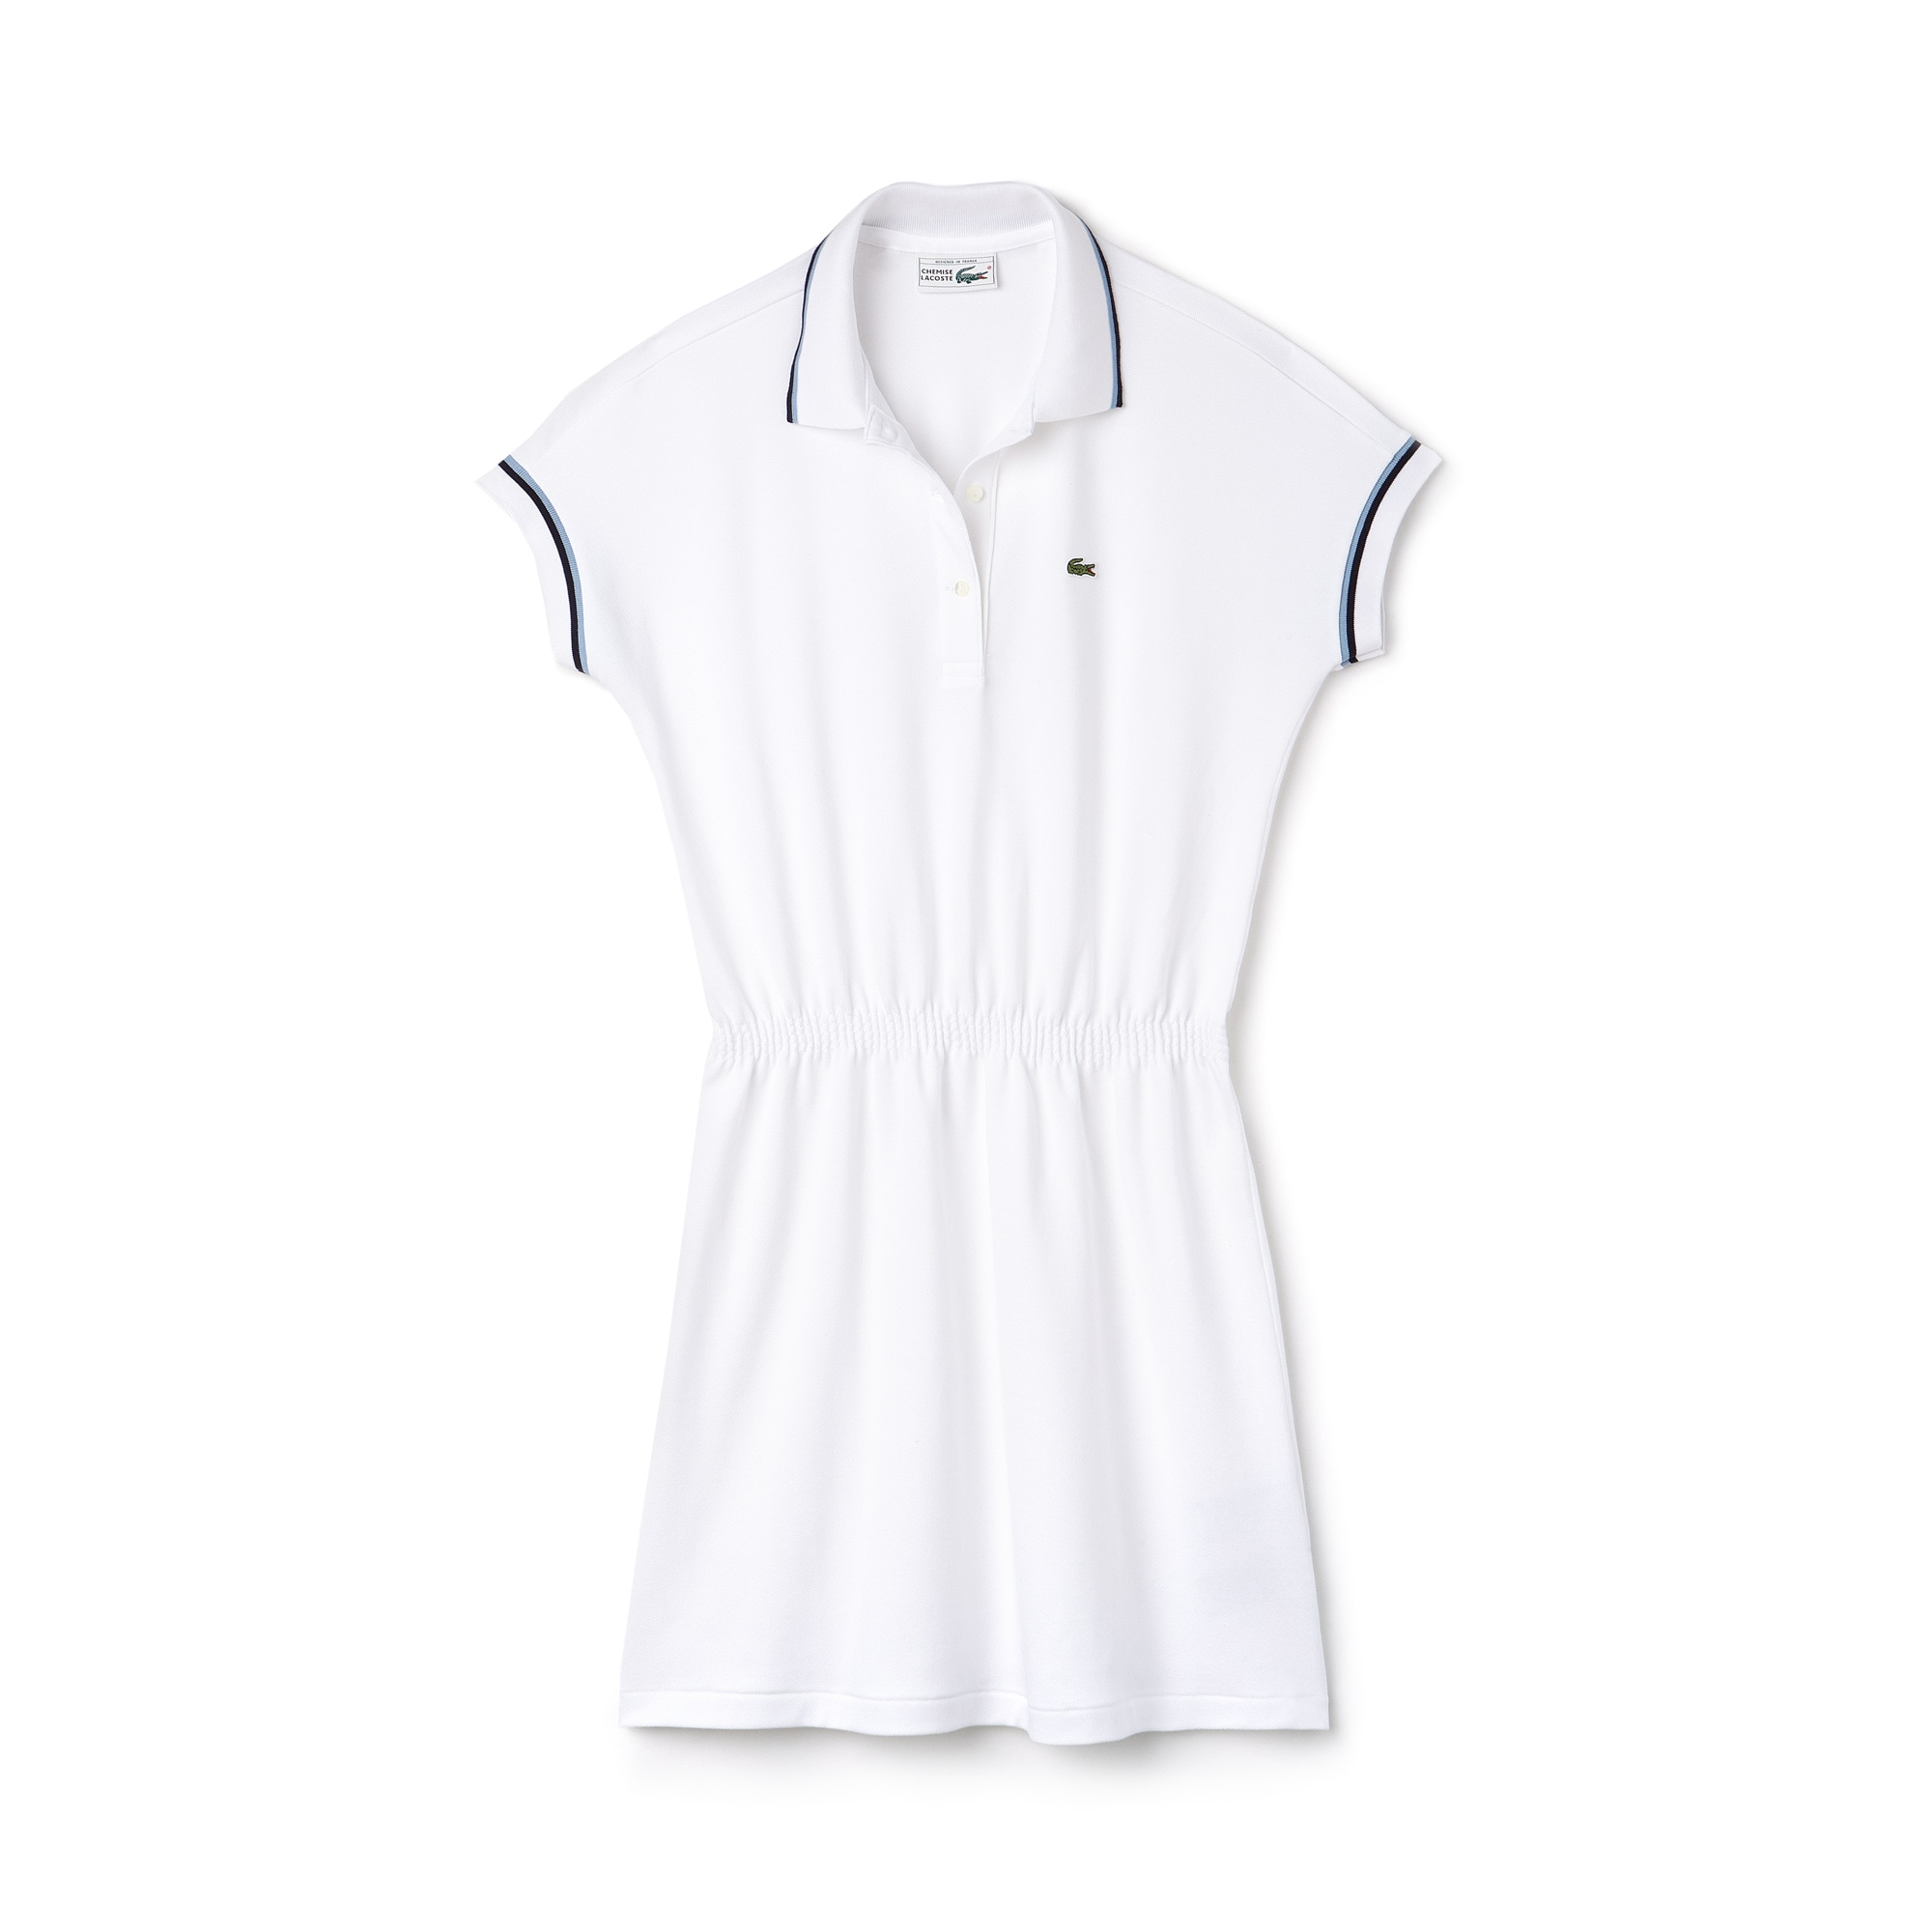 Women's Lacoste 85th Anniversary Limited Edition Piqué Polo Dress